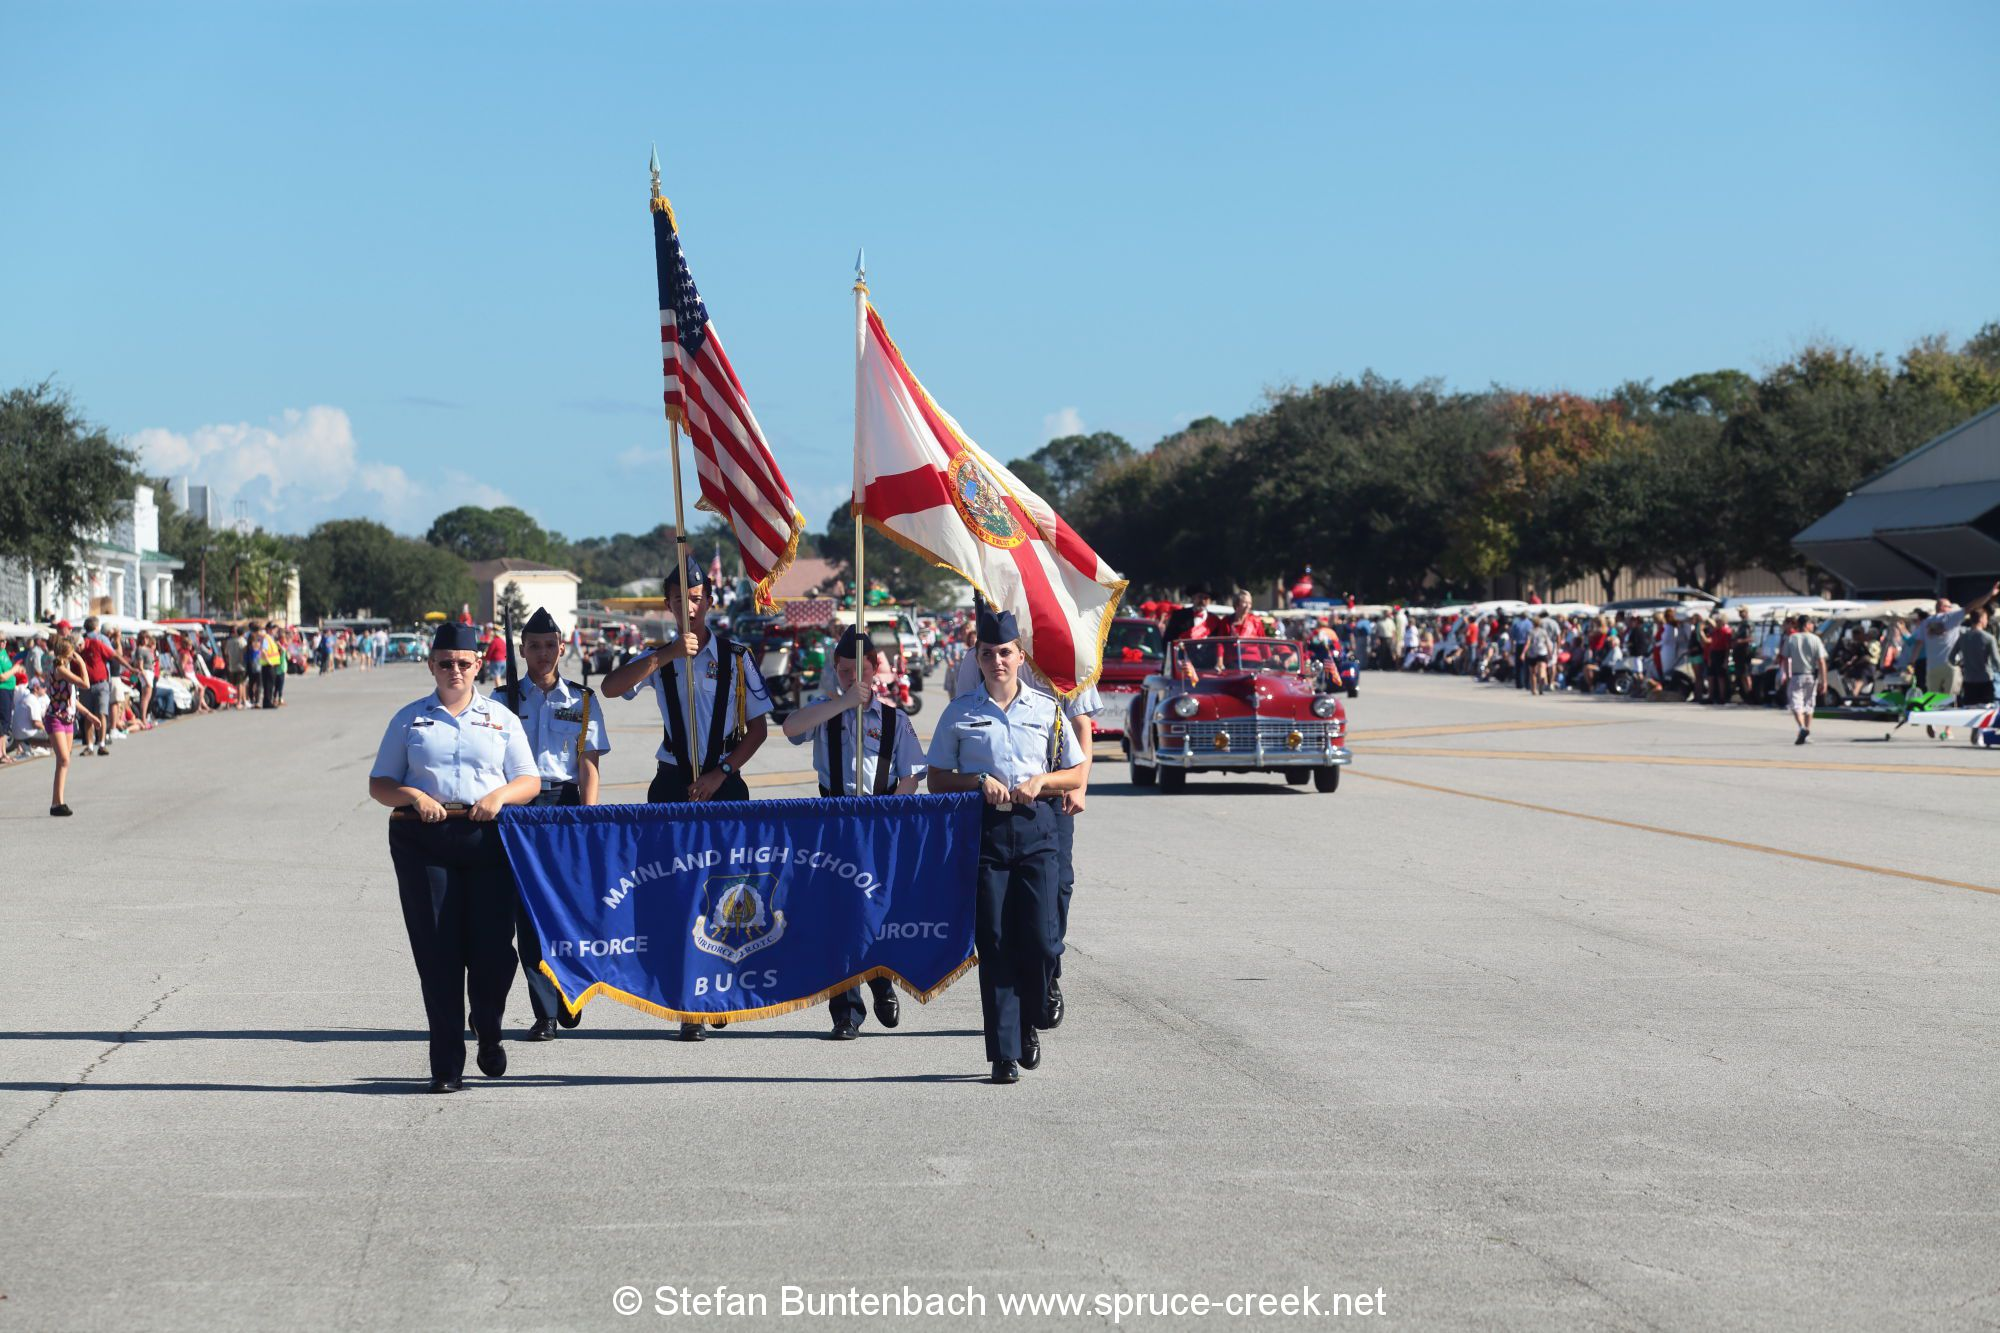 Spruce-Creek-Toyparade-2015- IMG_1453